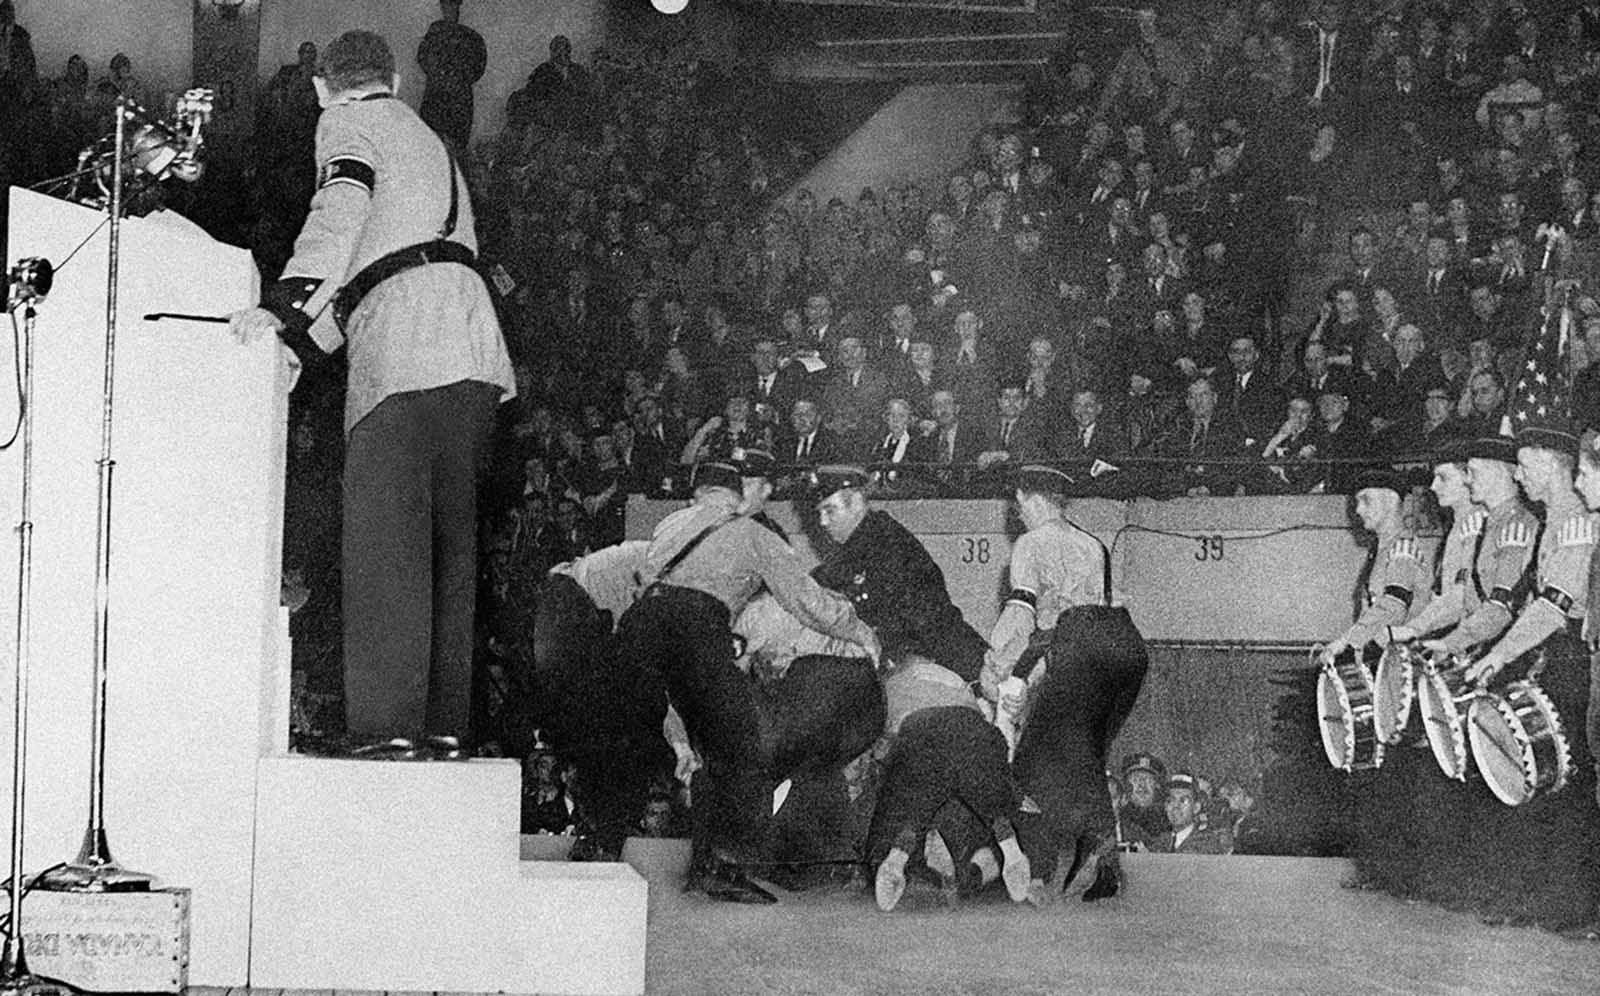 Stormtroopers subdue a heckler on the platform at New York's Madison Square Garden, February 20, 1939. Police who rescued and later arrested the man, whose clothing was torn from him in the struggle, identified him as Isadore Greenbaum, 26, a hotel worker. Fritz Kuhn, National Bund leader, stands on the rostrum, his back turned as he regards the struggle which interrupted his Denunciation of Jews during the Bund rally.